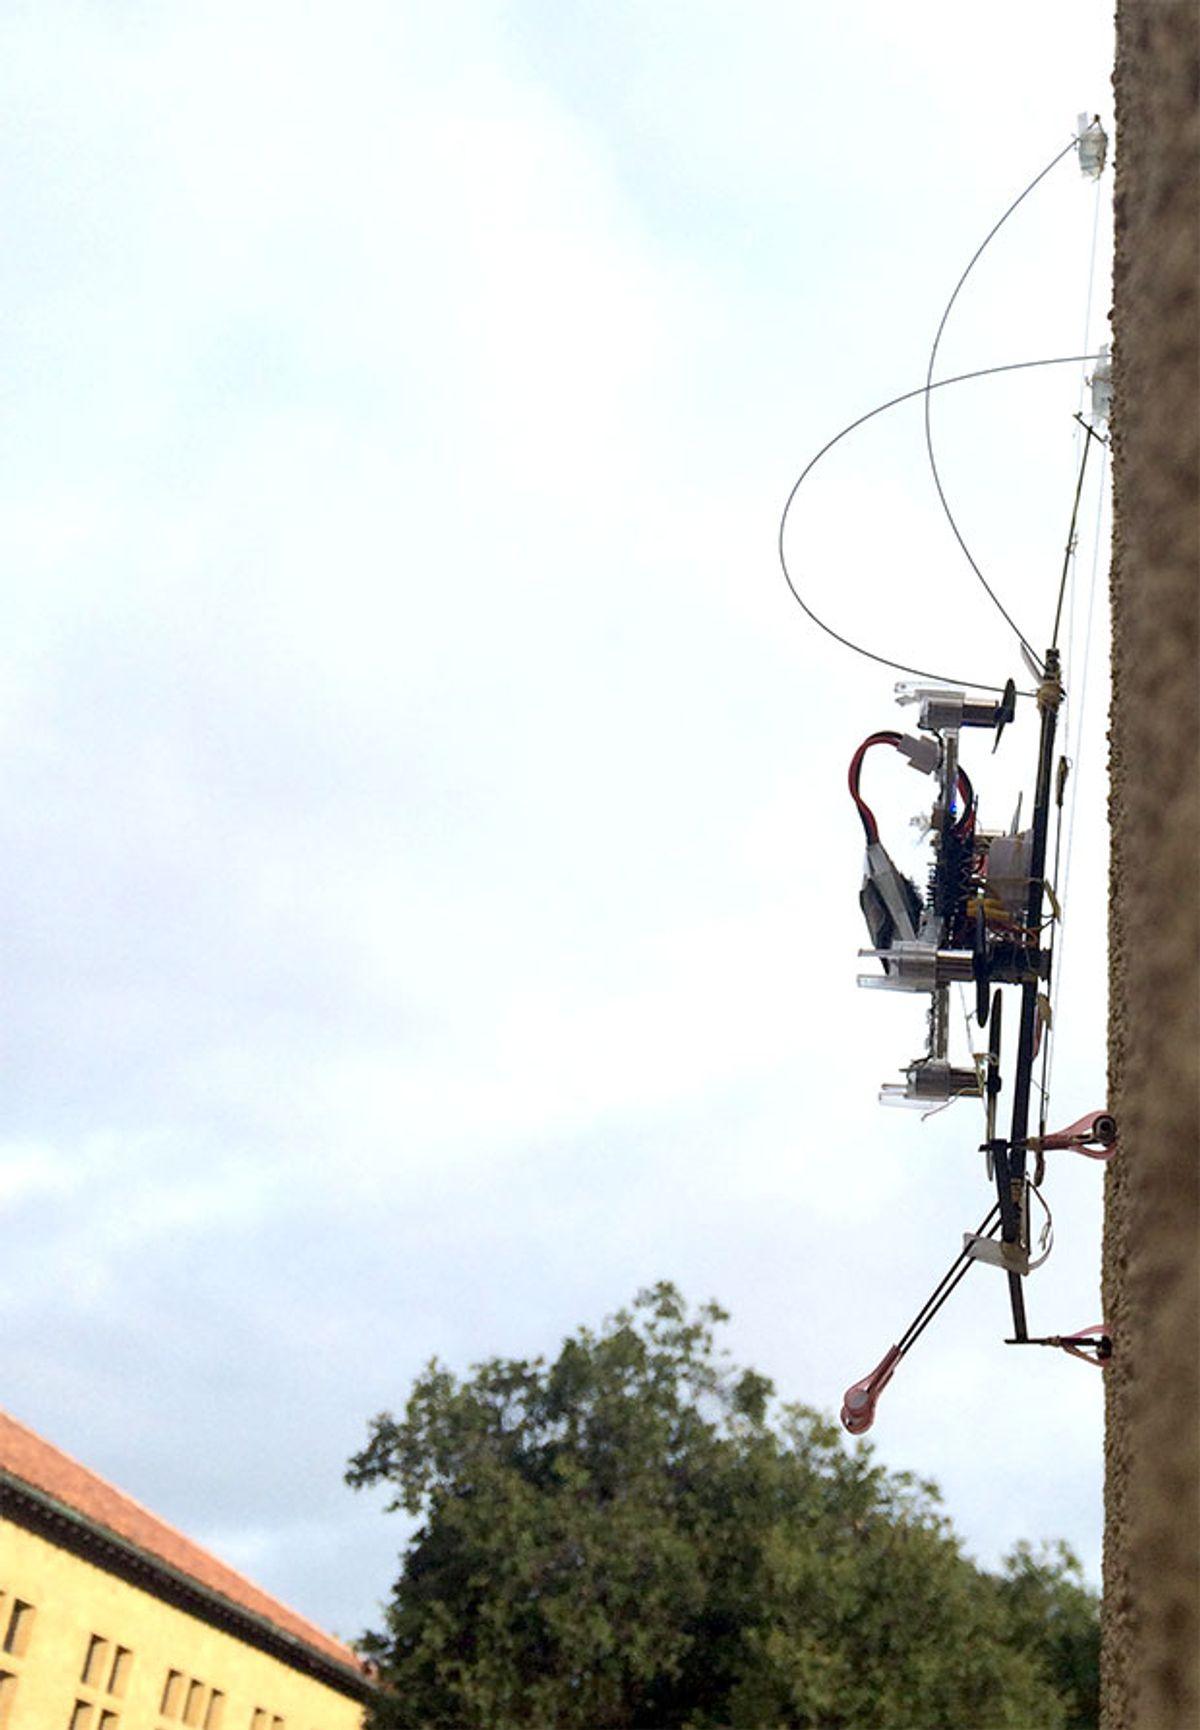 Stanford's Flying, Perching SCAMP Robot Can Climb Straight Up Walls